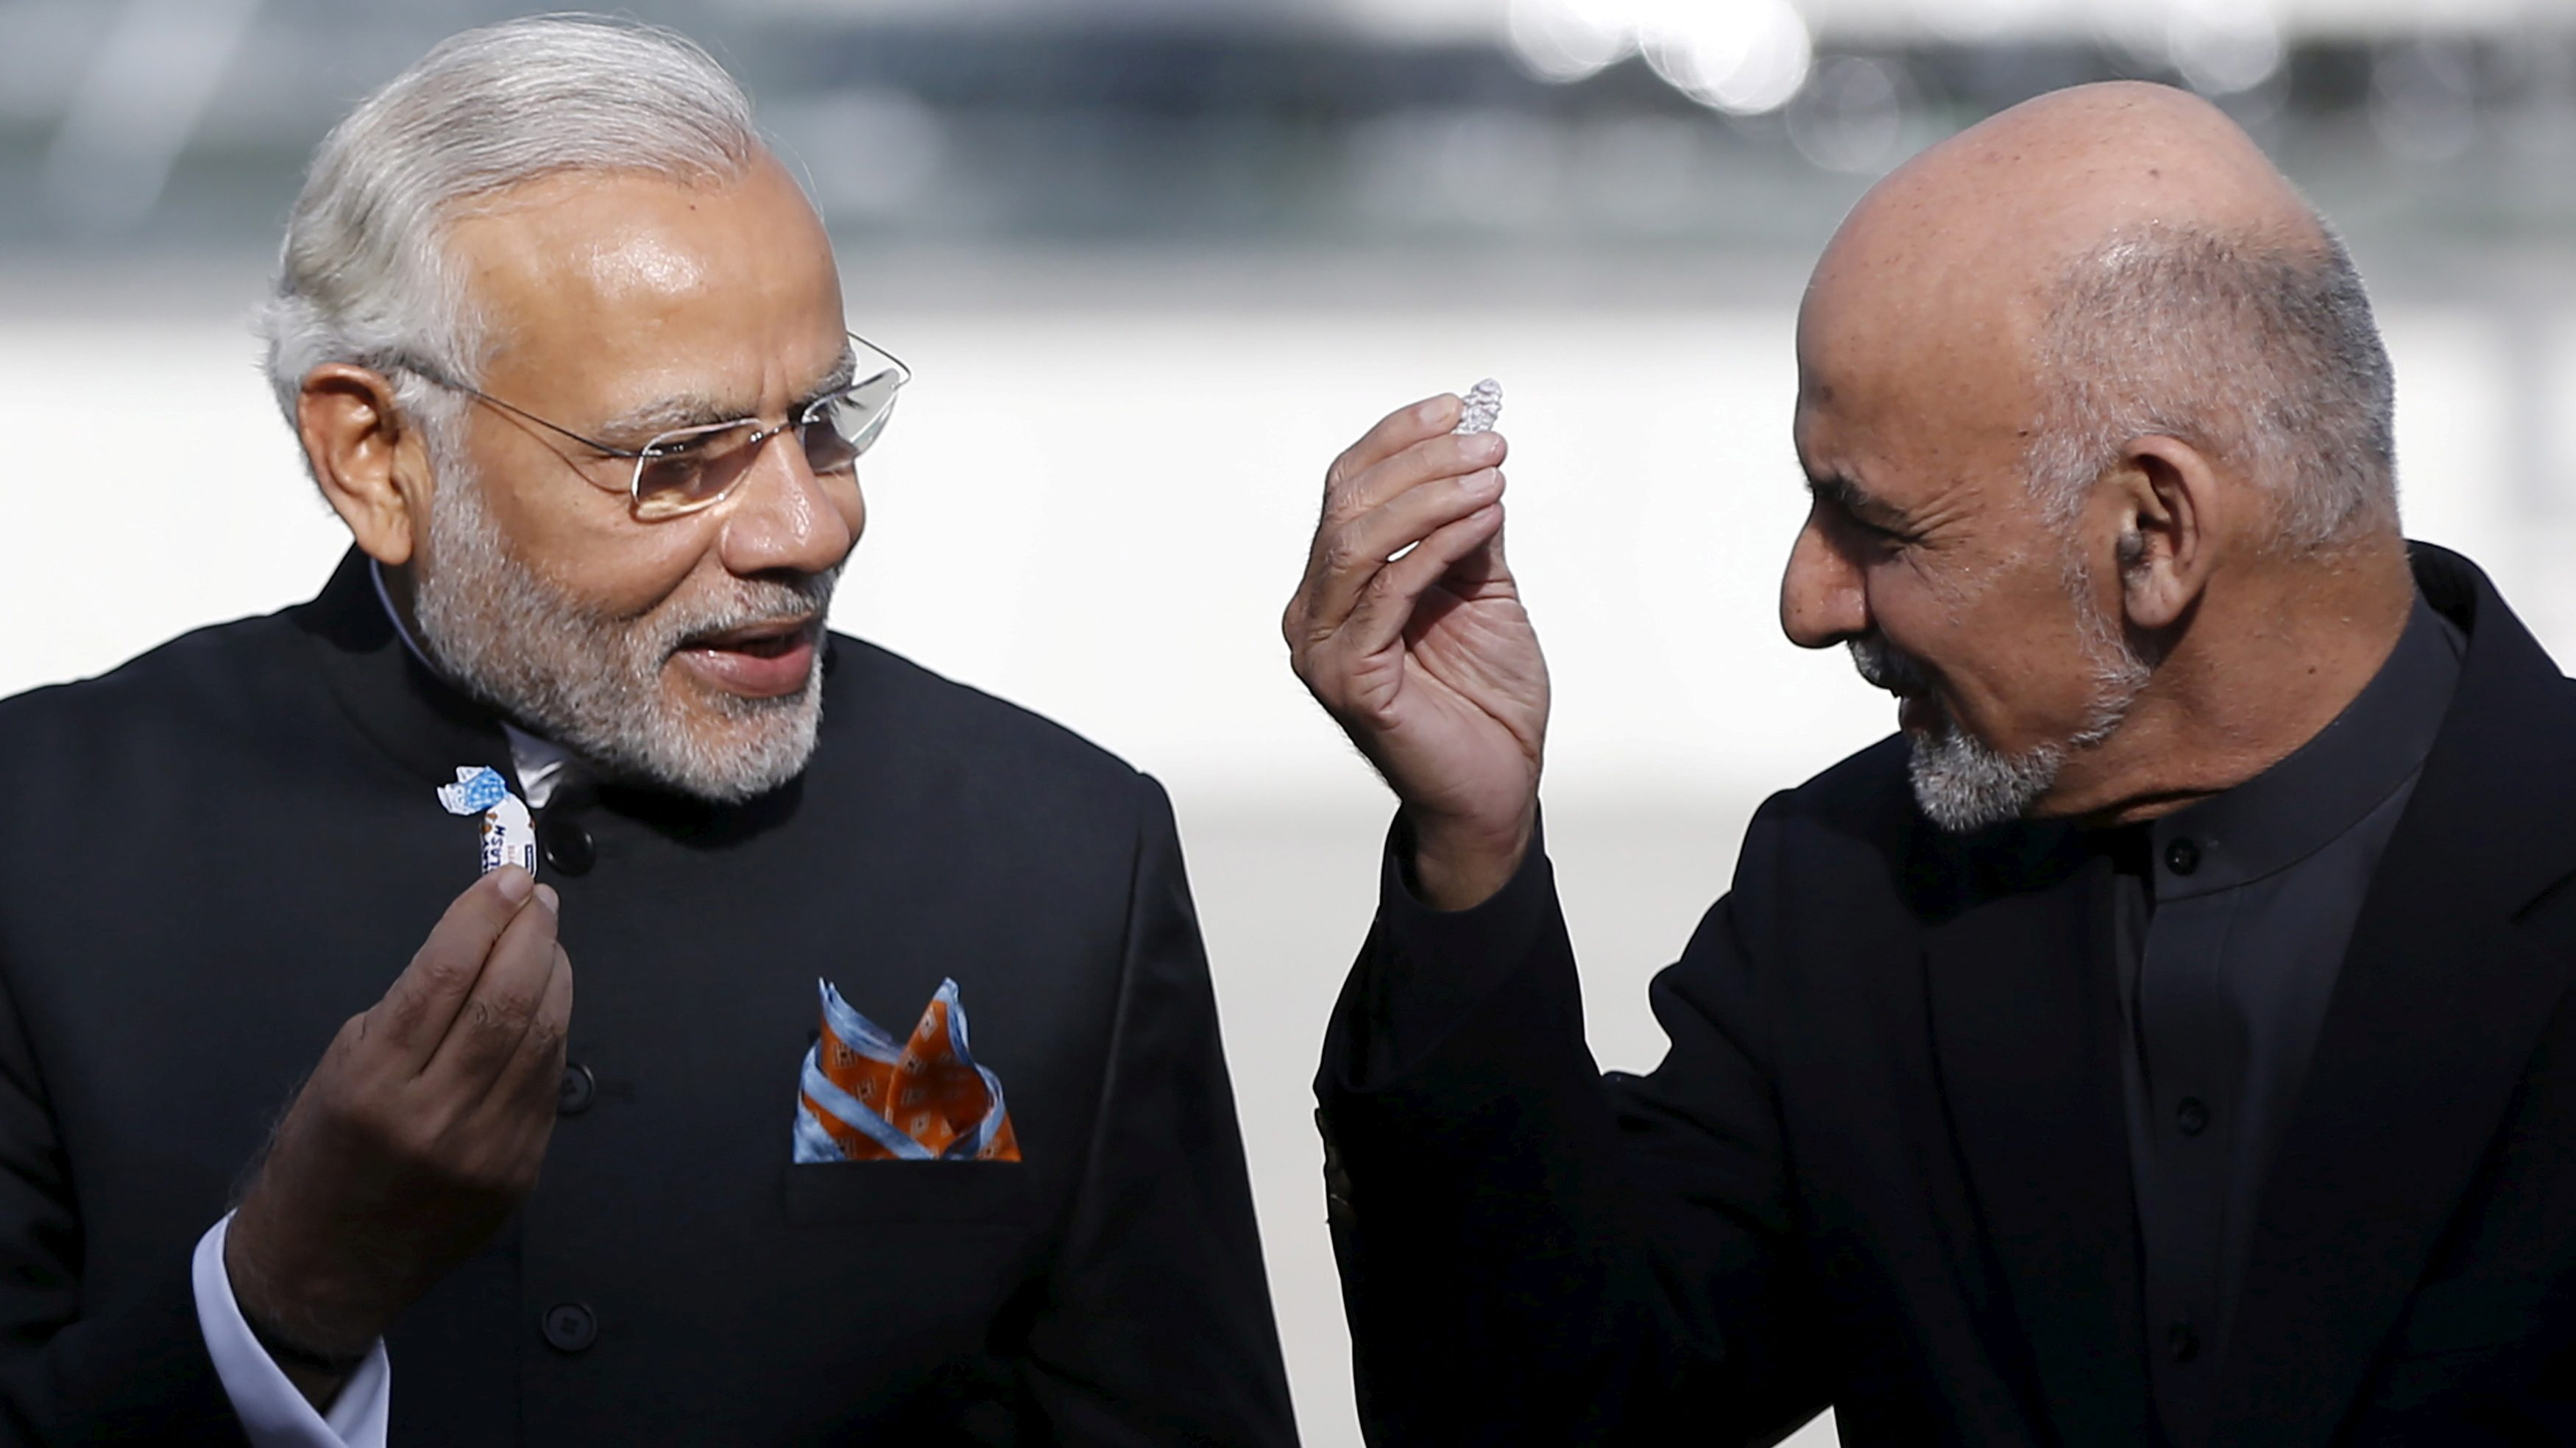 India's PM Modi and former Afghanistan's President Ashraf Ghani hold sweets as they inaugurate Afghanistan's new parliament building in Kabul Afghanistan